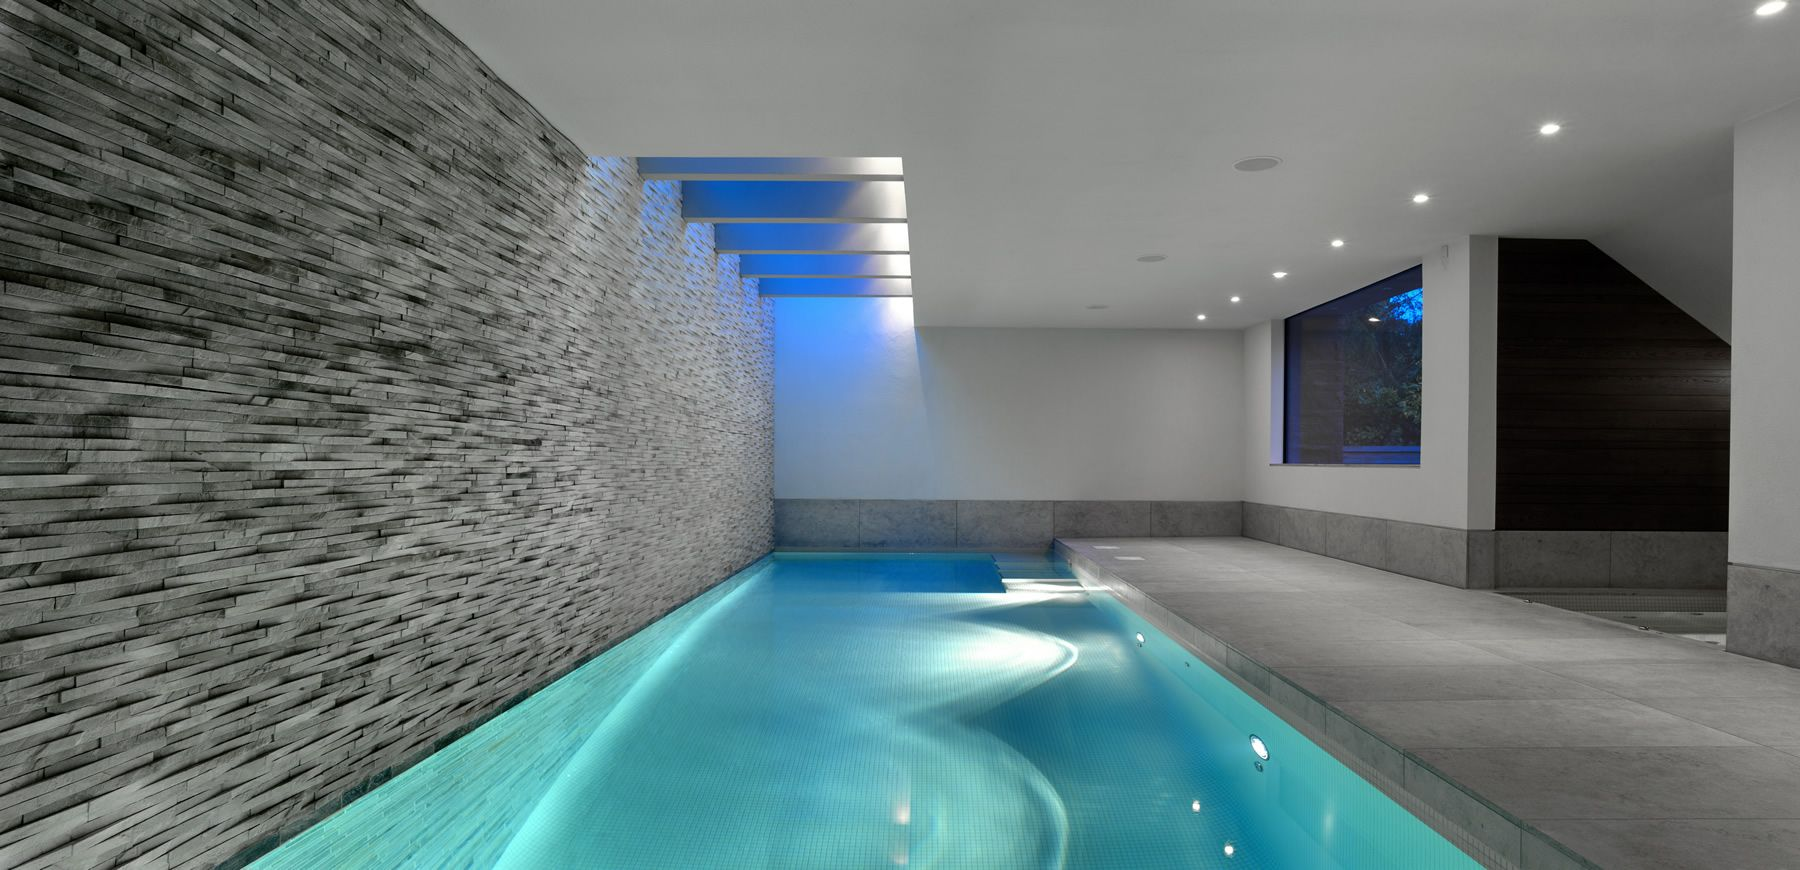 Inside Pool swimming pool indoor - creditrestore